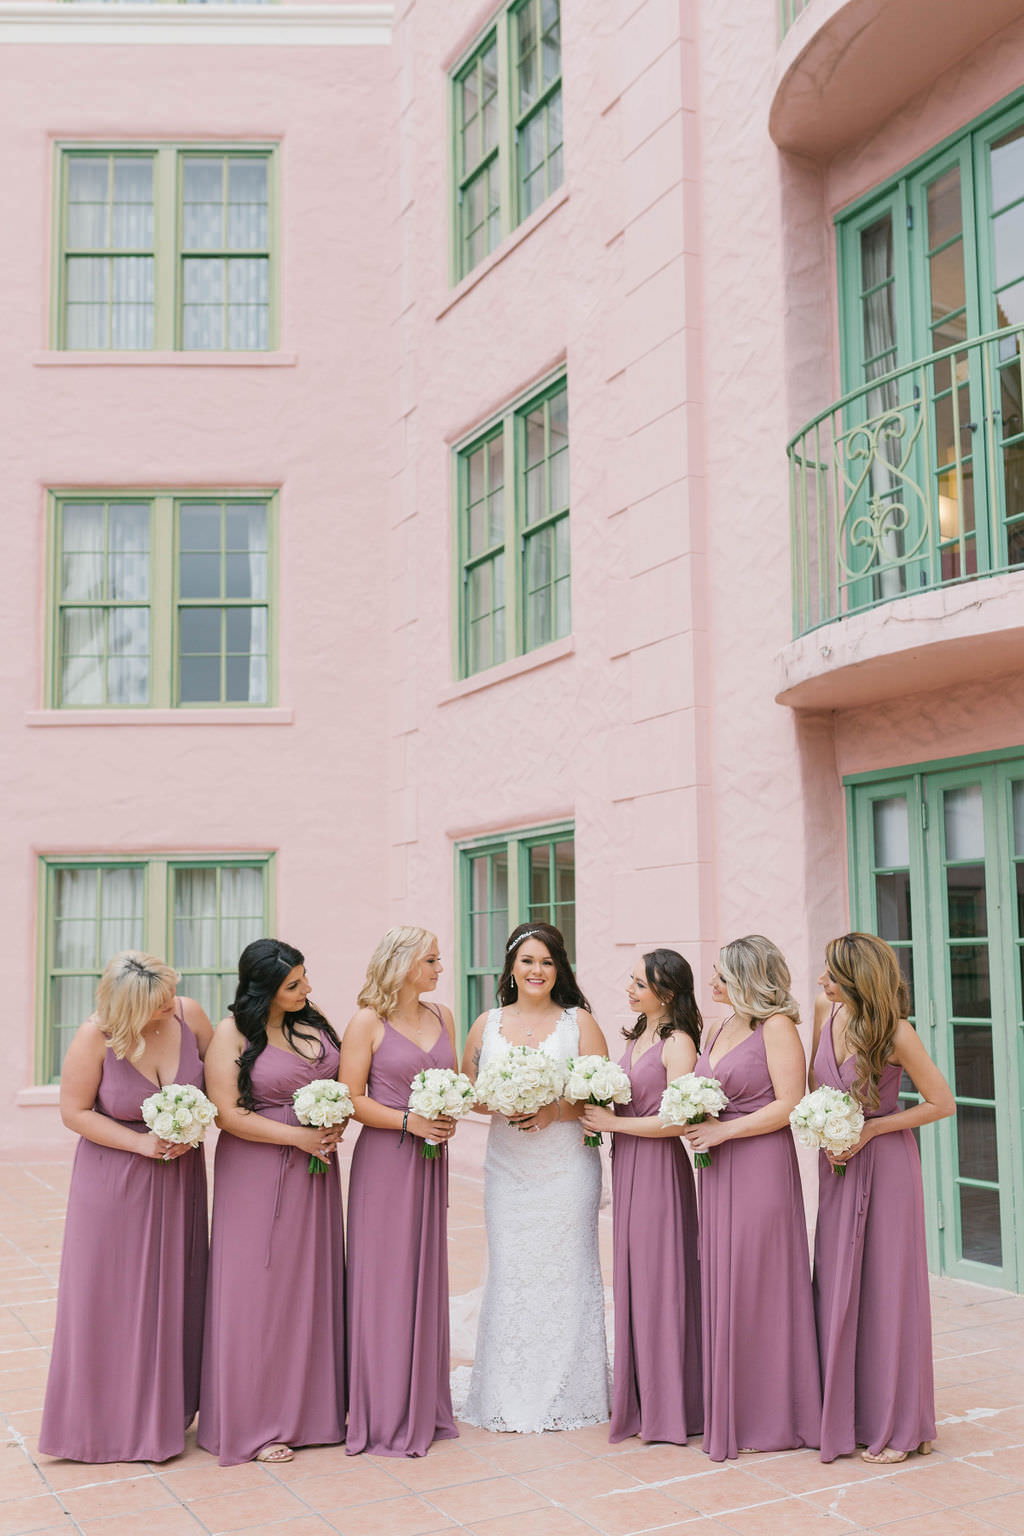 Florida Bride in Lace Wedding Dress and Bridesmaids in Mauve Dresses Holding White Floral Bouquets   St. Petersburg Hotel Wedding Venue The Vinoy Renaissance   Wedding Florist Bruce Wayne Florals   Wedding Hair and Makeup Michele Renee the Studio